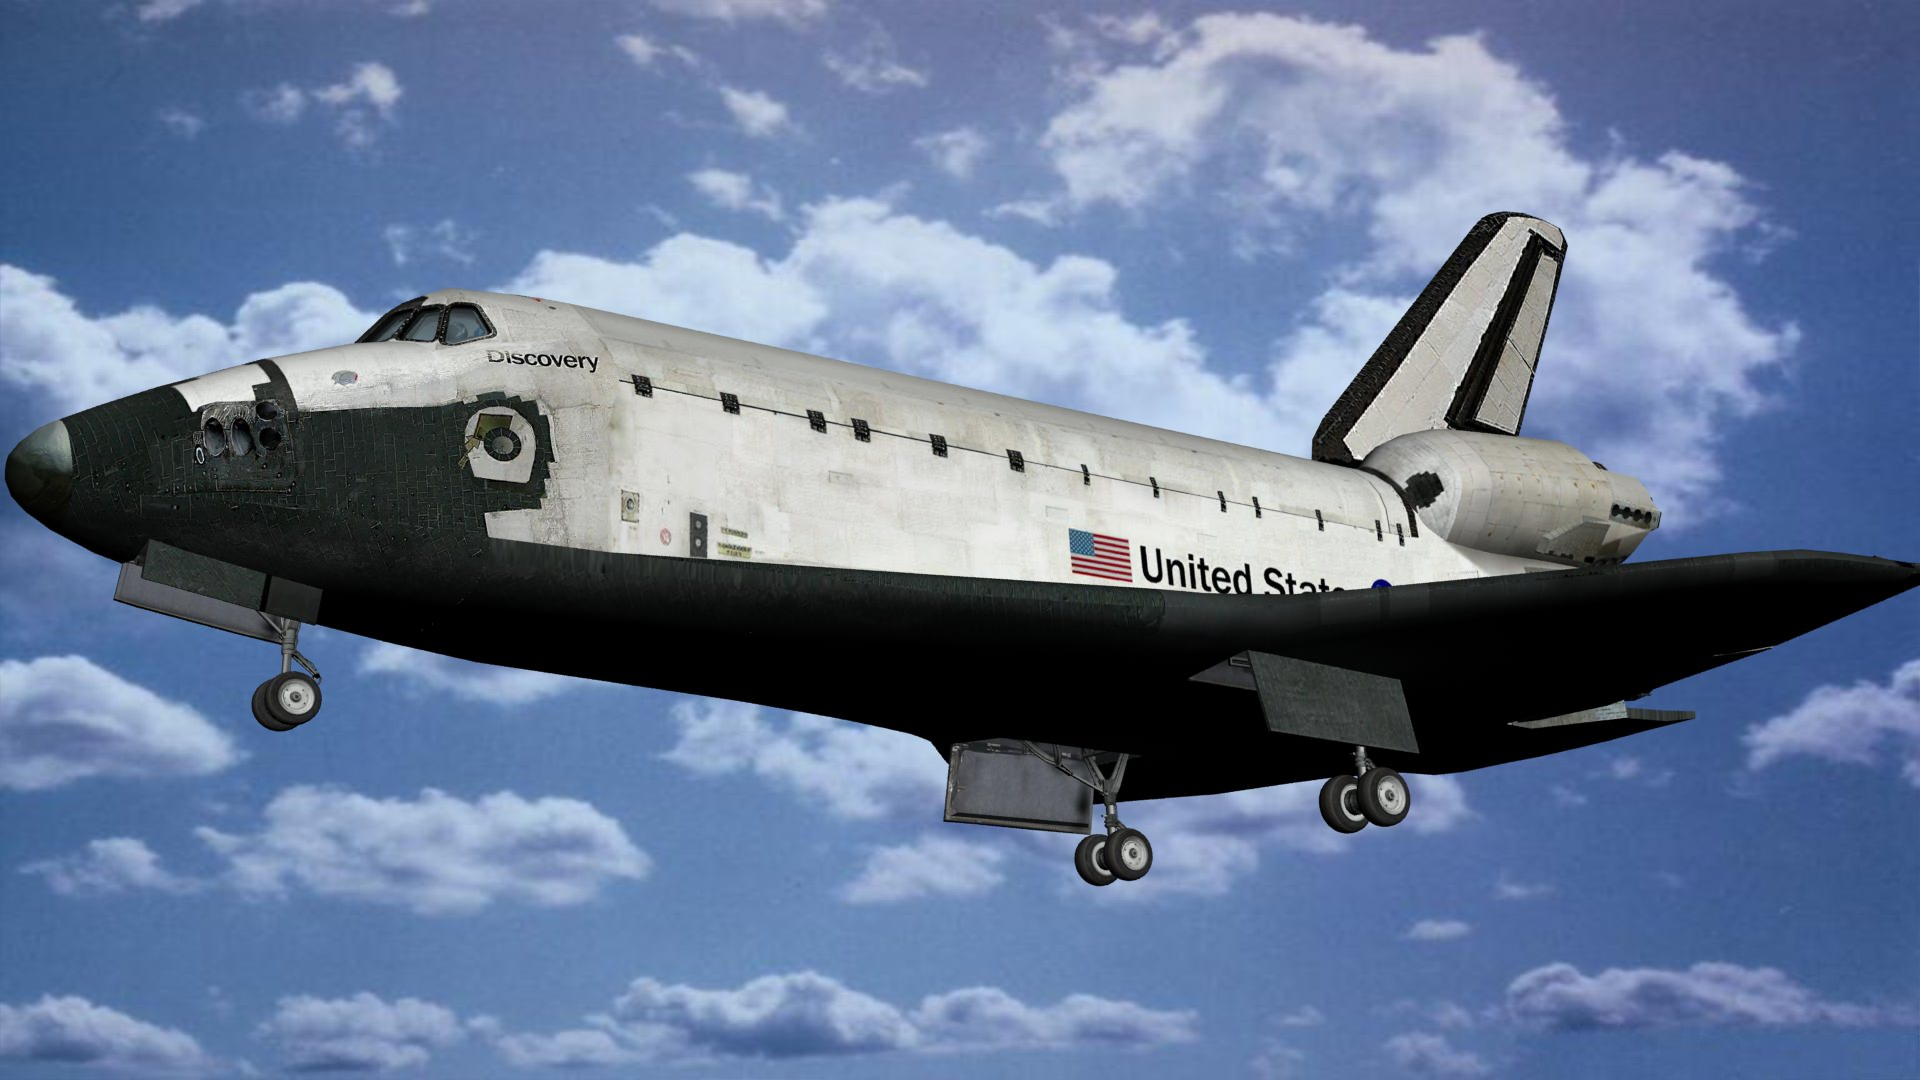 discovery space shuttle model - photo #45